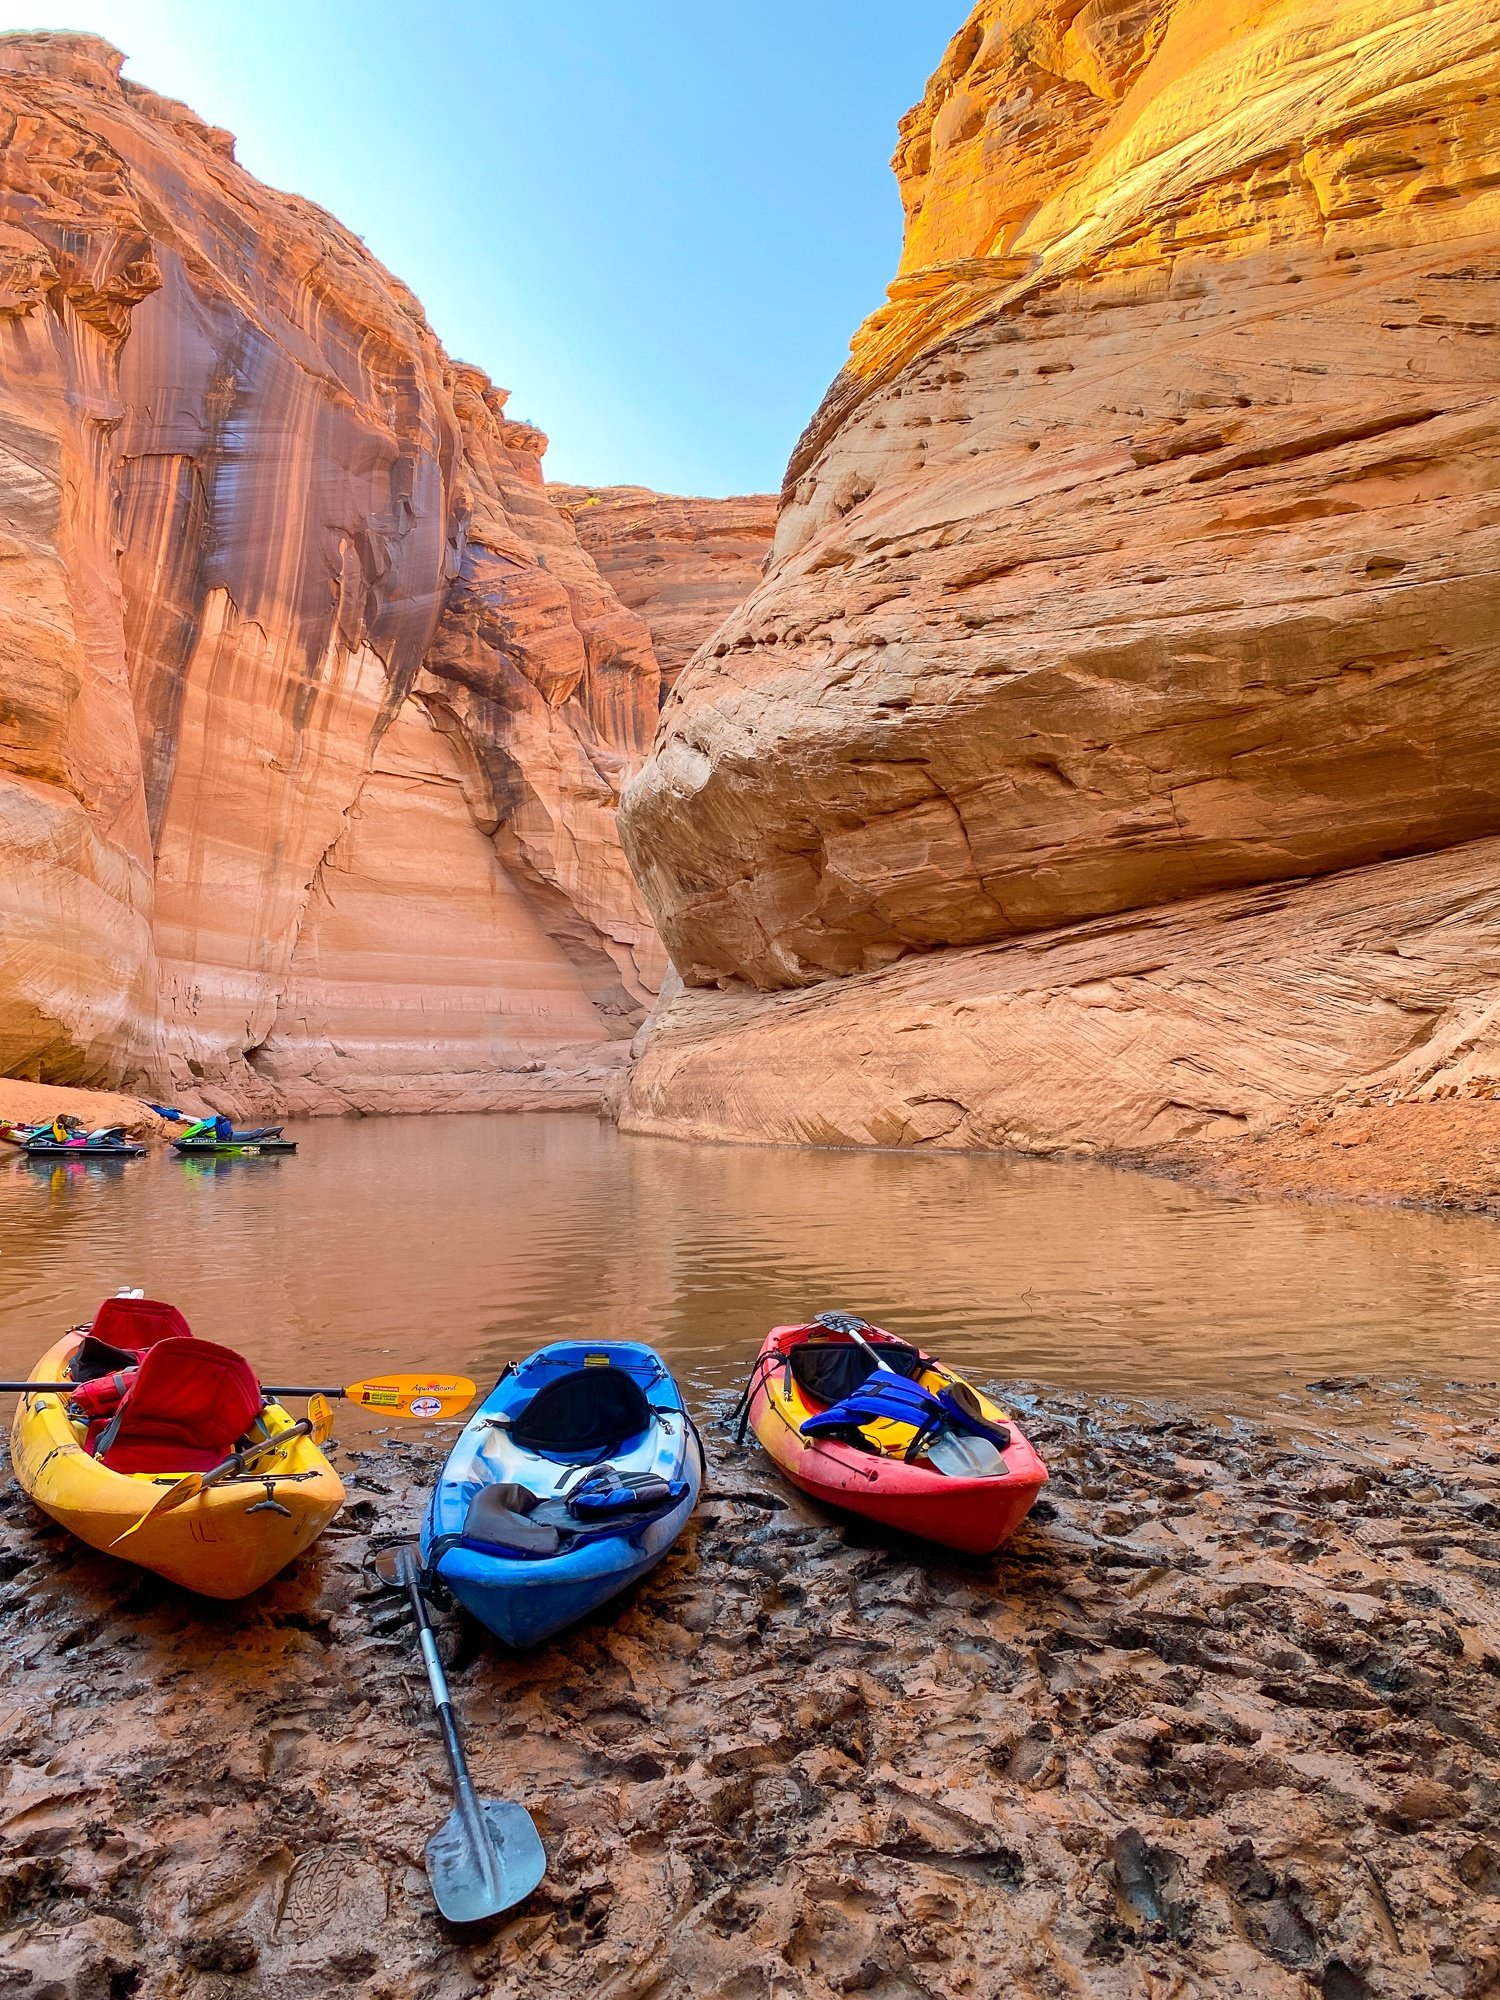 Kayaks docked on the shore of Lake Powell in Antelope Canyon